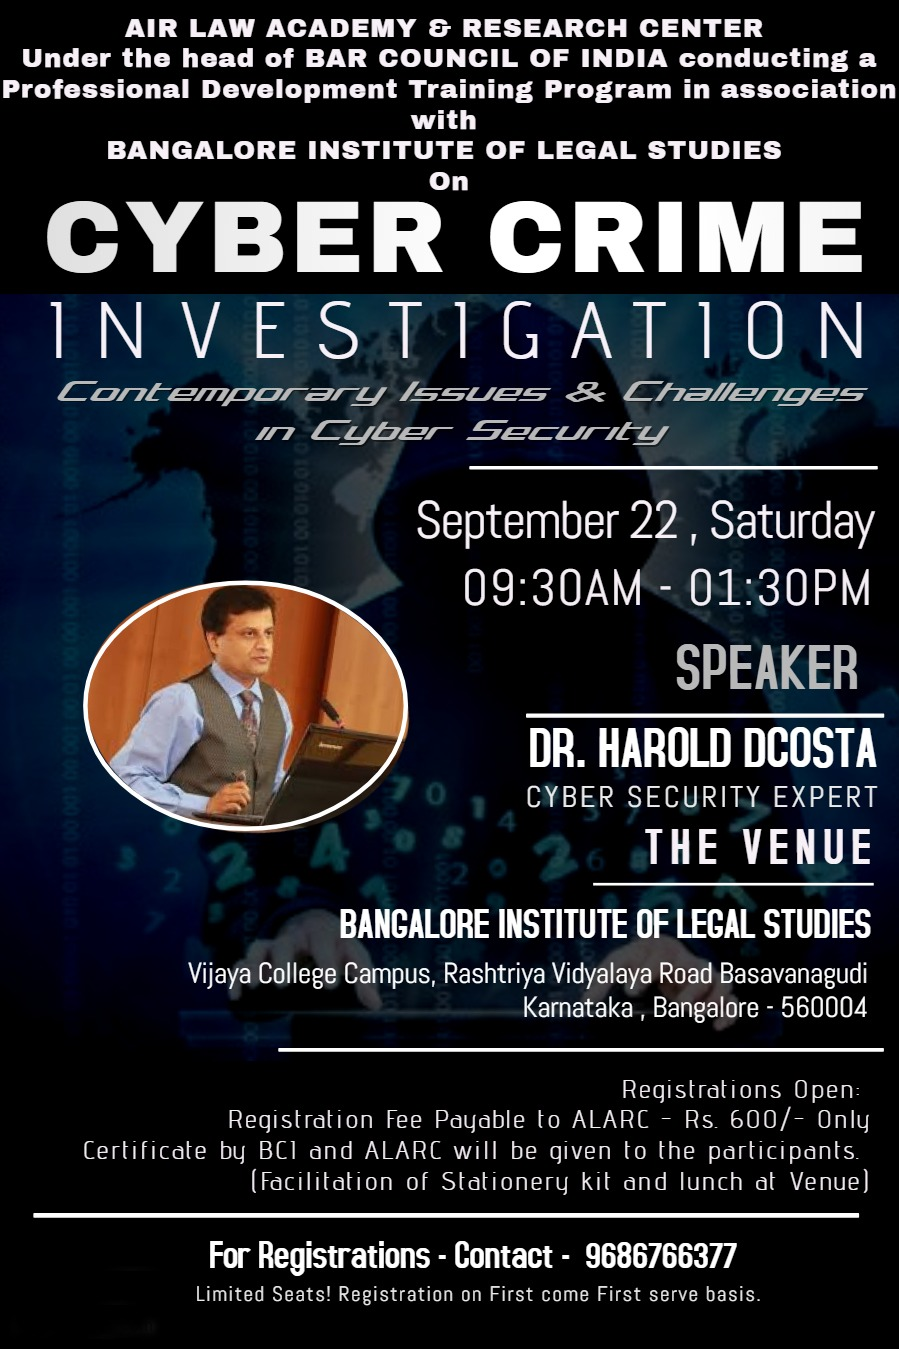 Training Program on Cyber Crime Investigation by Bangalore Institute of Legal Studies [Sep 22]: Register by Sep 18